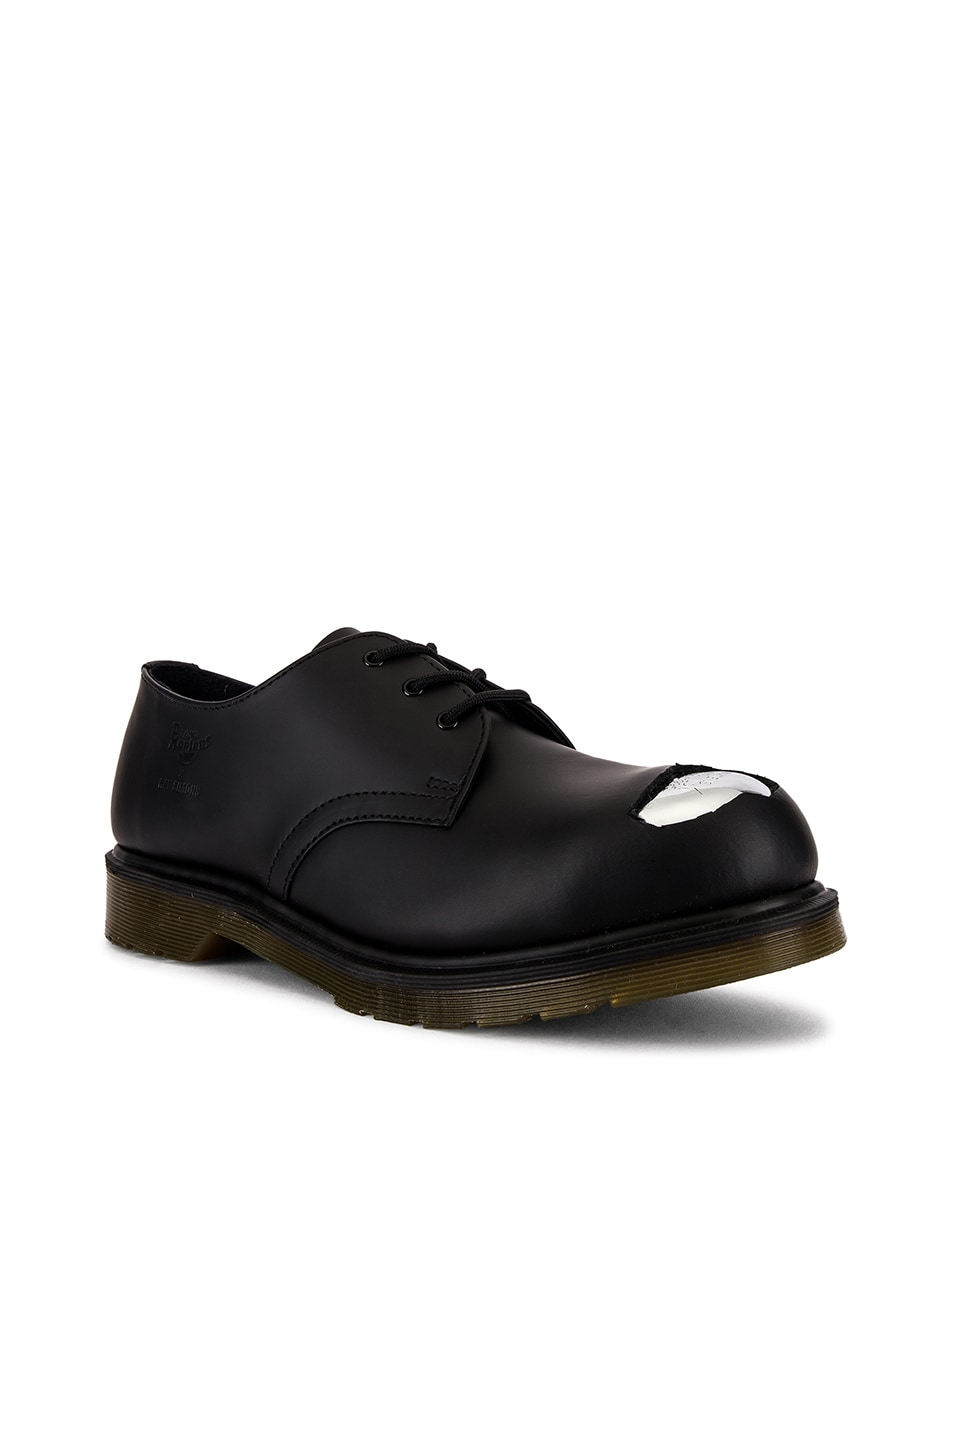 Image 1 of Raf Simons x Dr. Martens Cut Out Steel Toe Shoes in Black